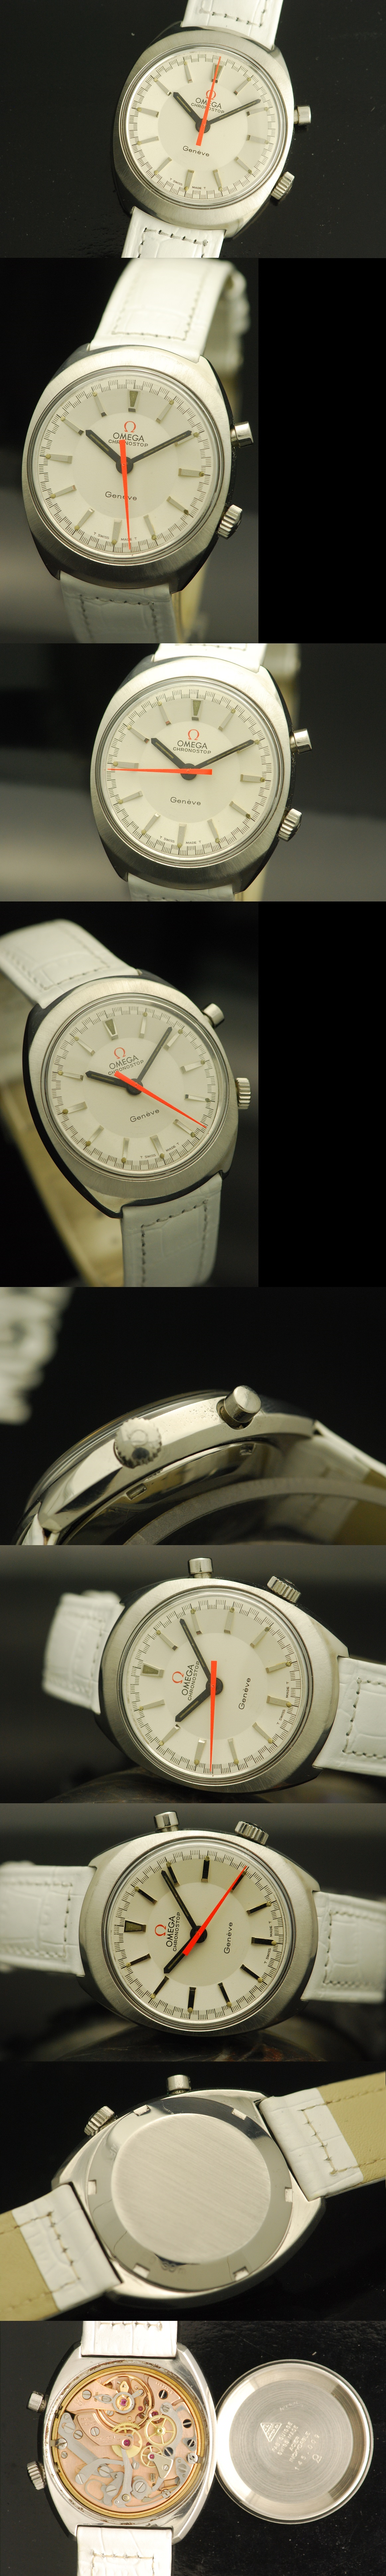 1968 Omega Chronostop Geneve White dial Gent's Watch Vintage